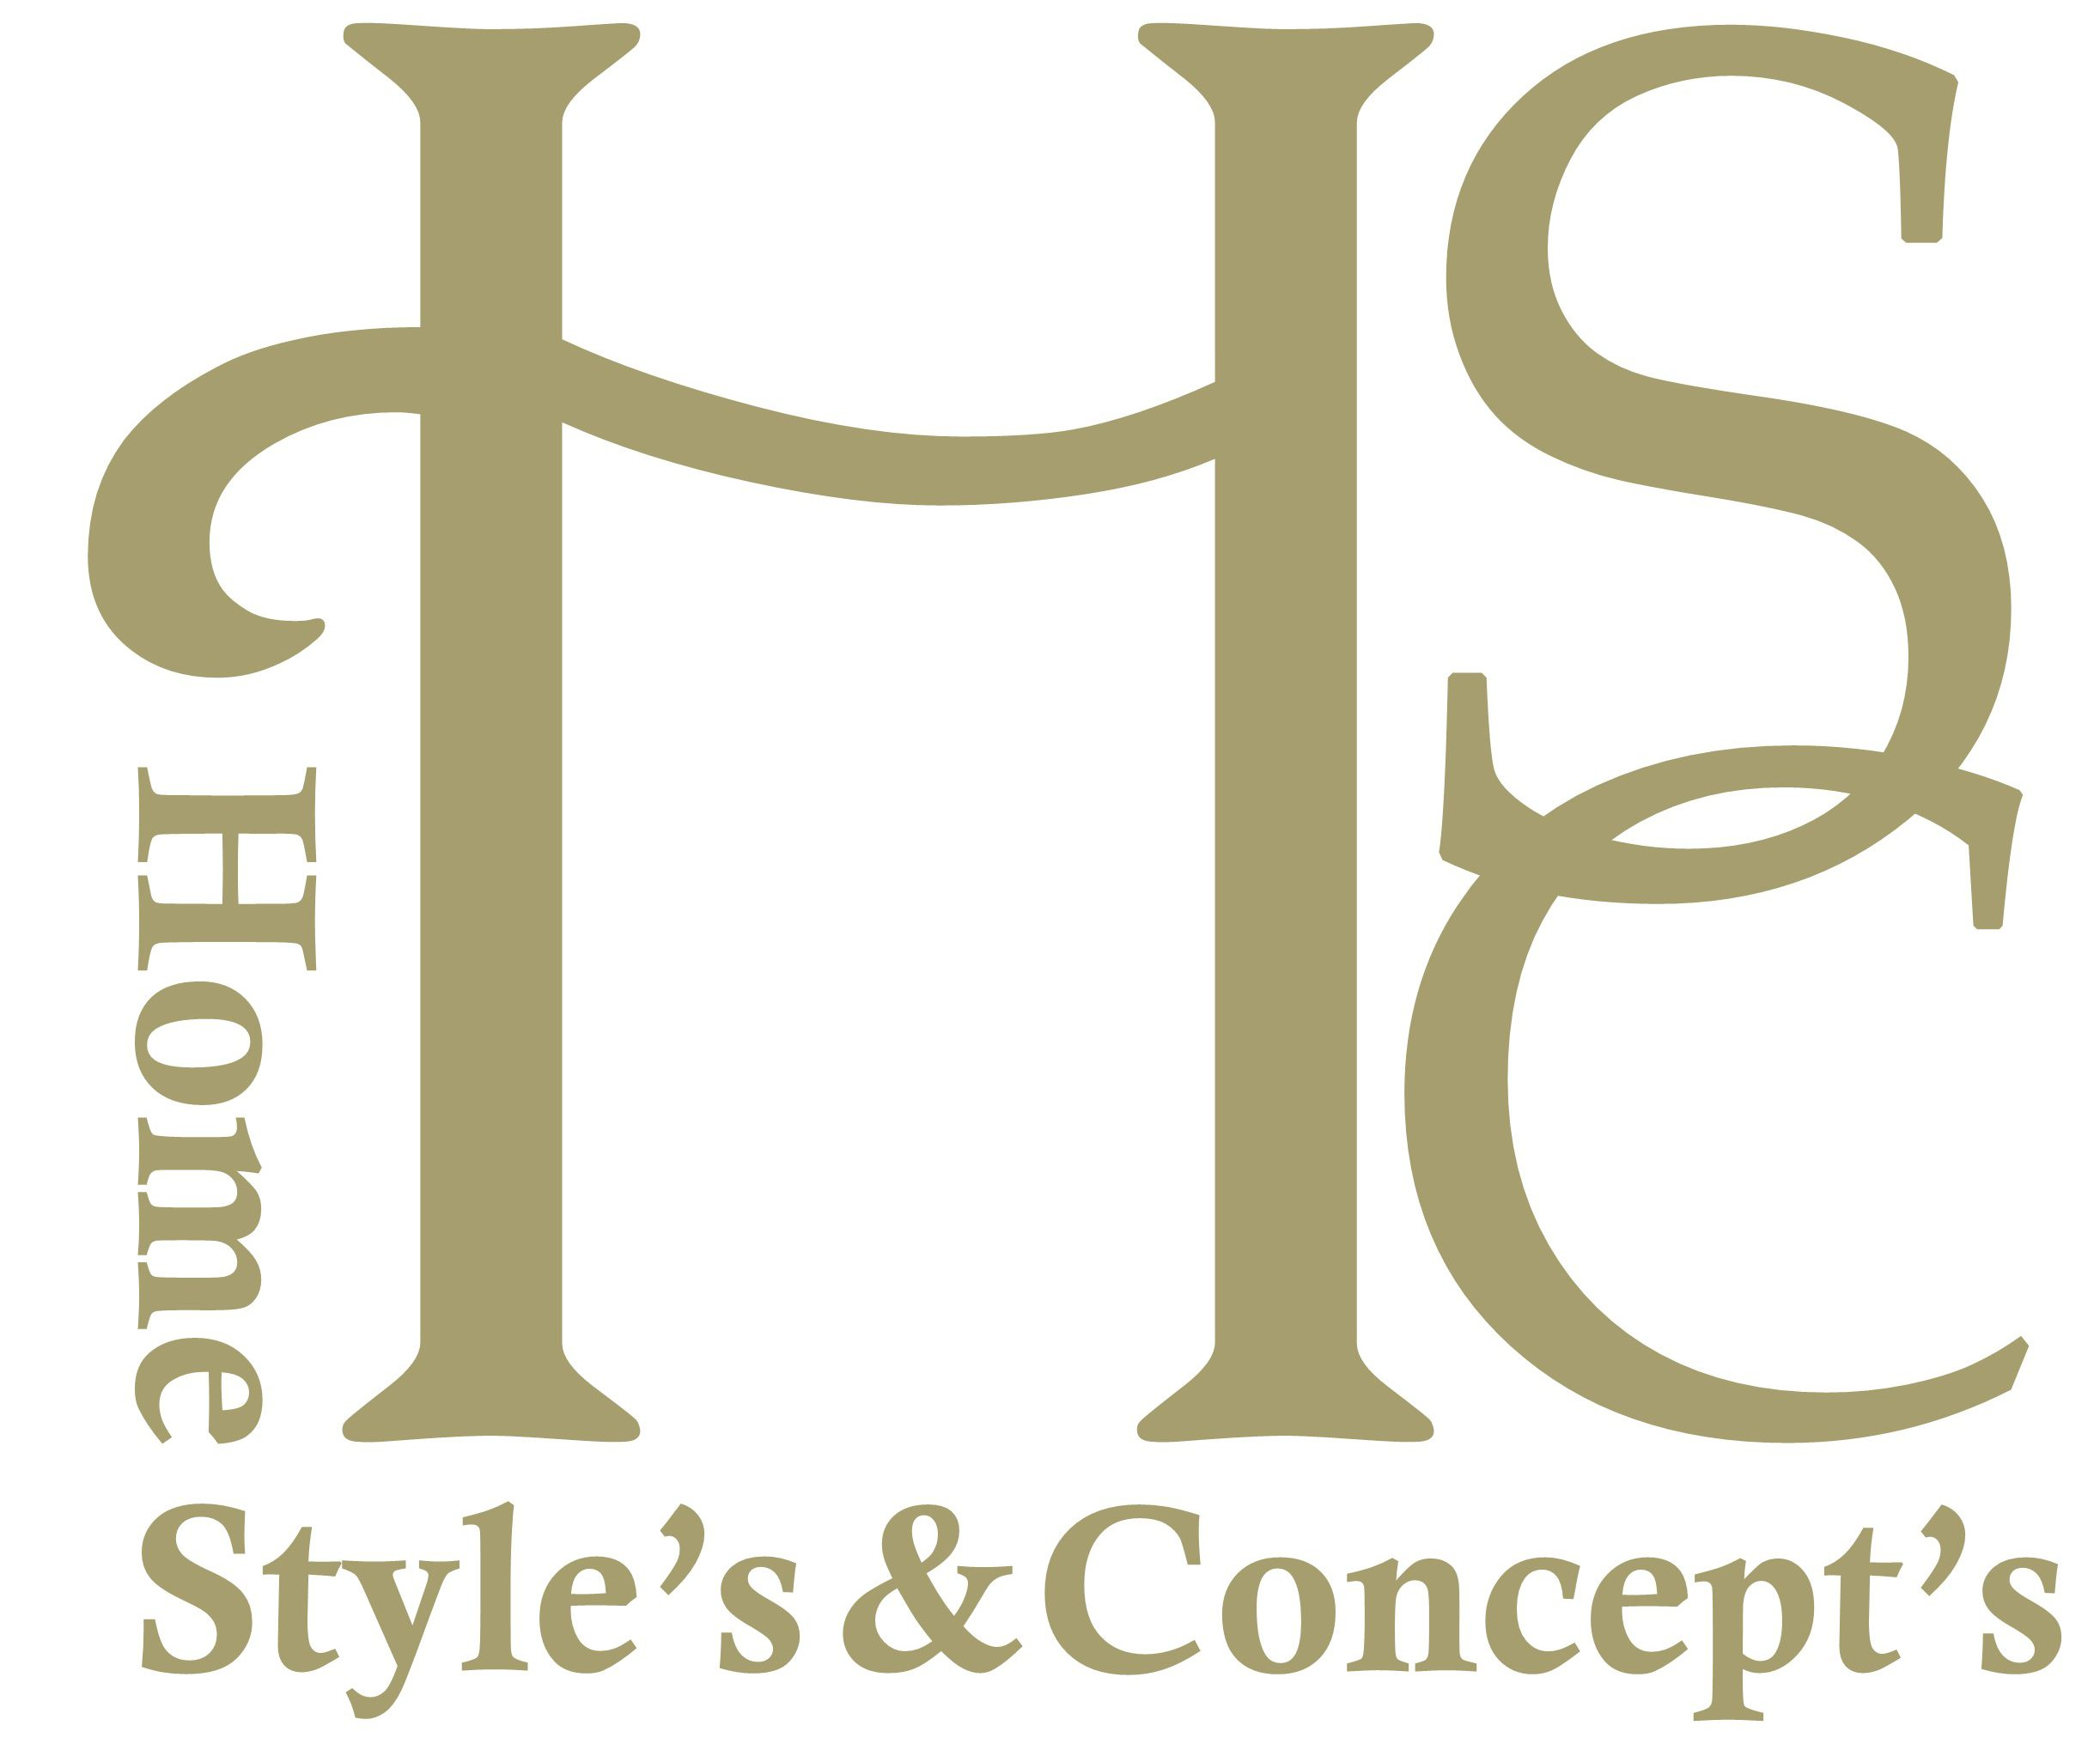 Home Style's & Concept's